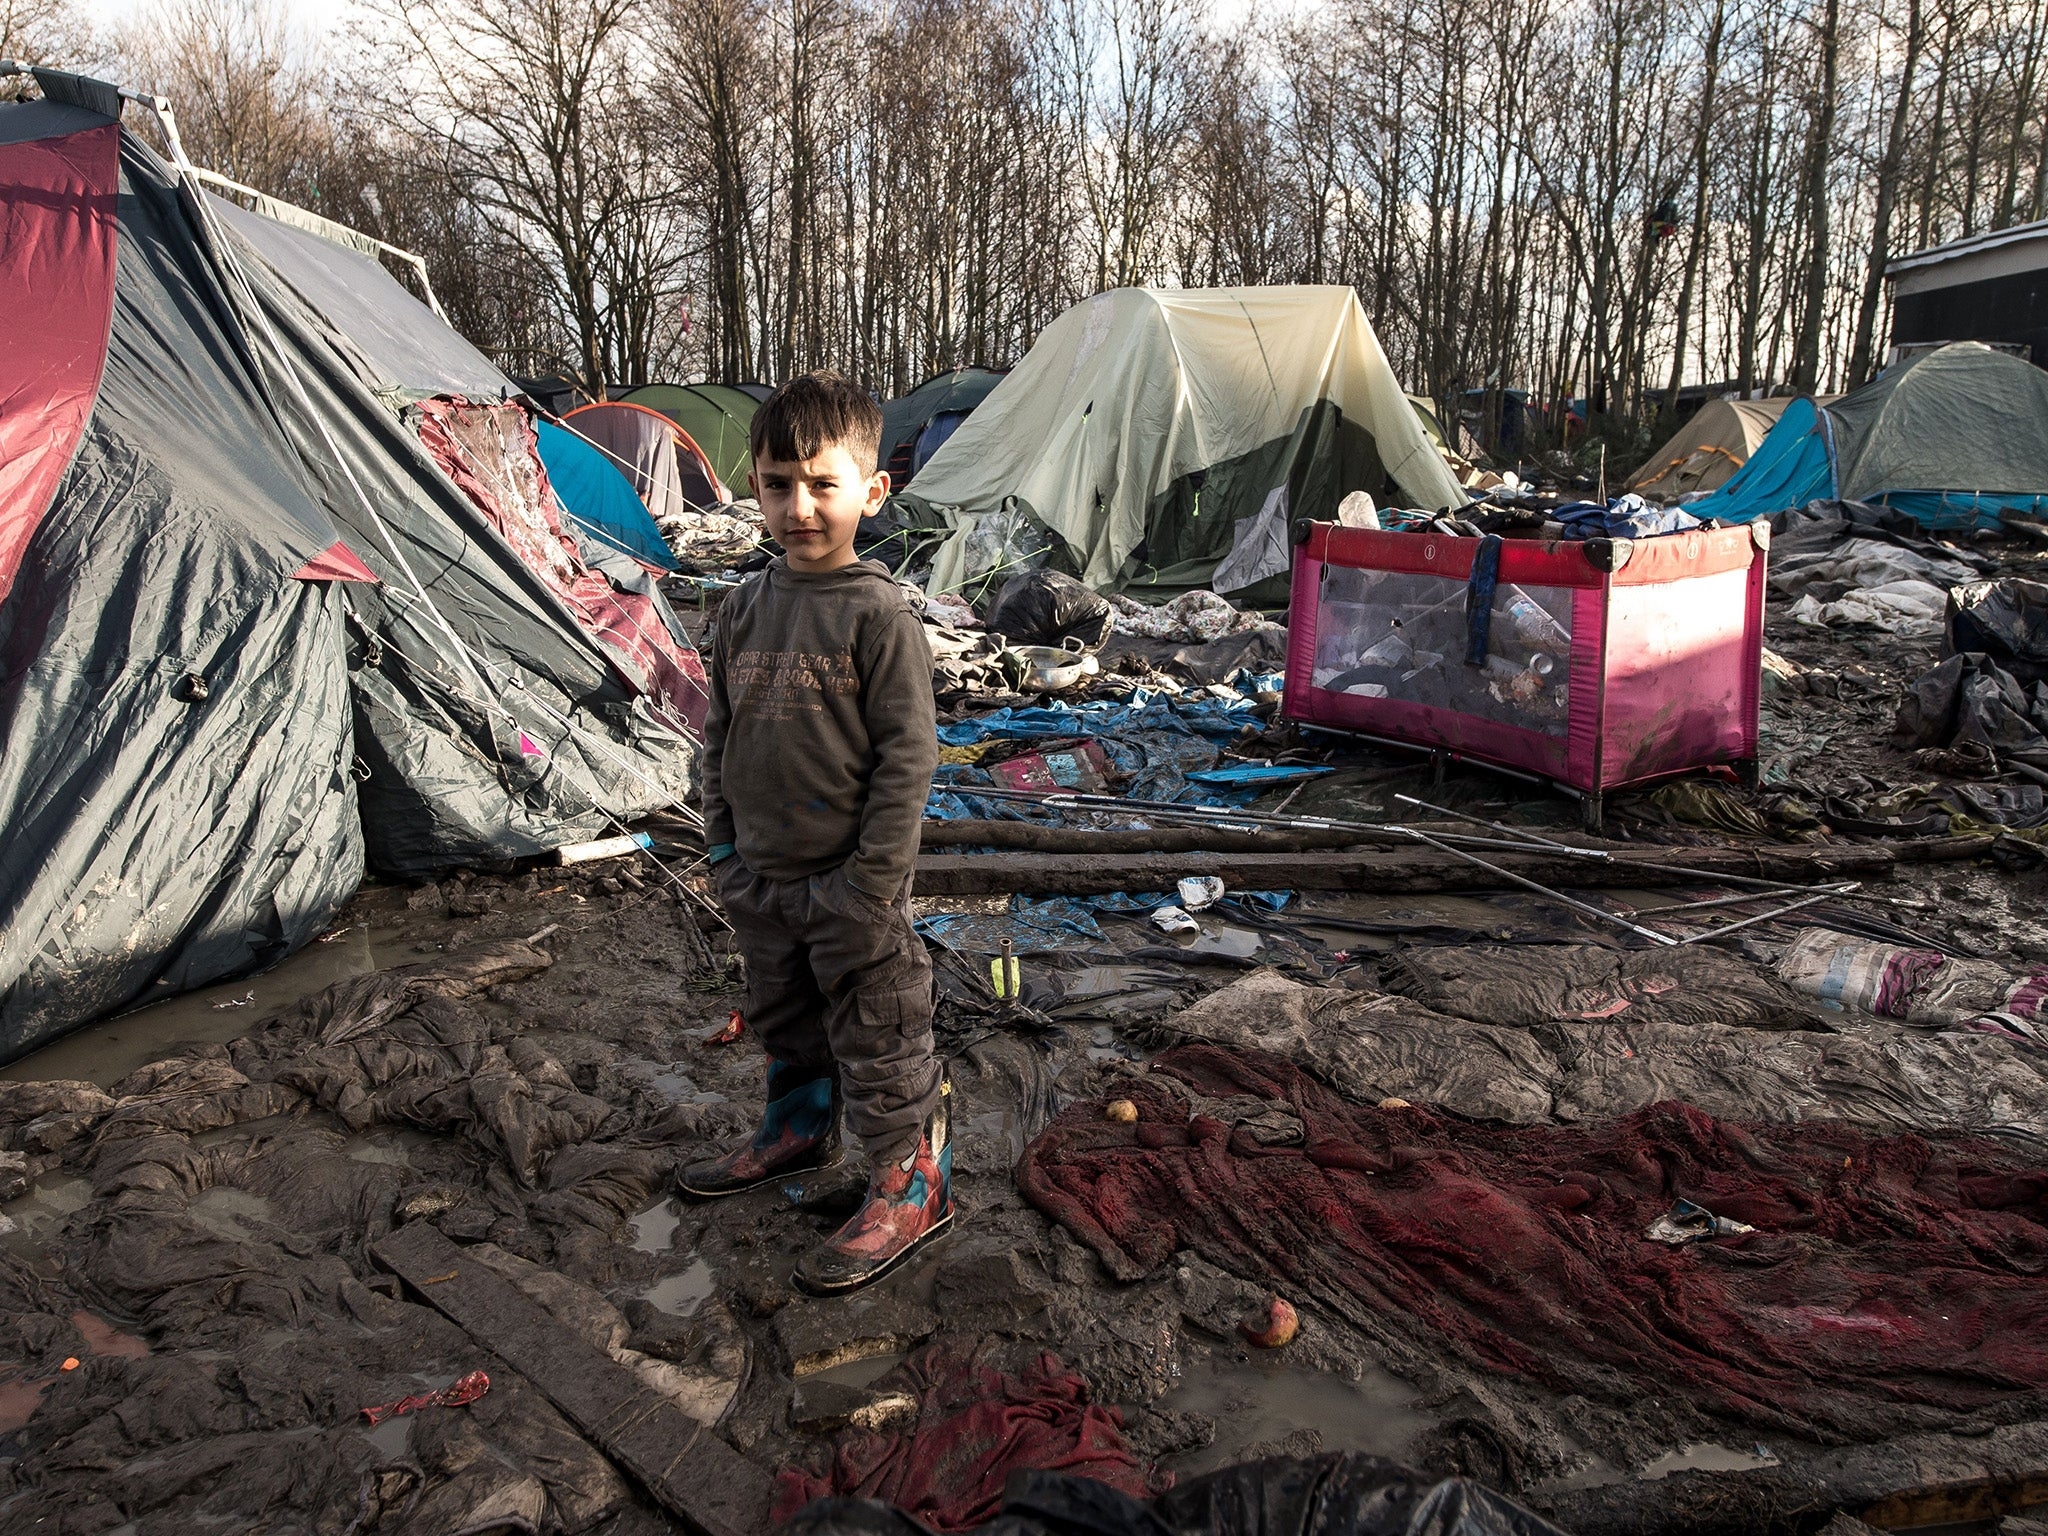 If we turn our backs on lone Syrian child refugees, British values are truly dead